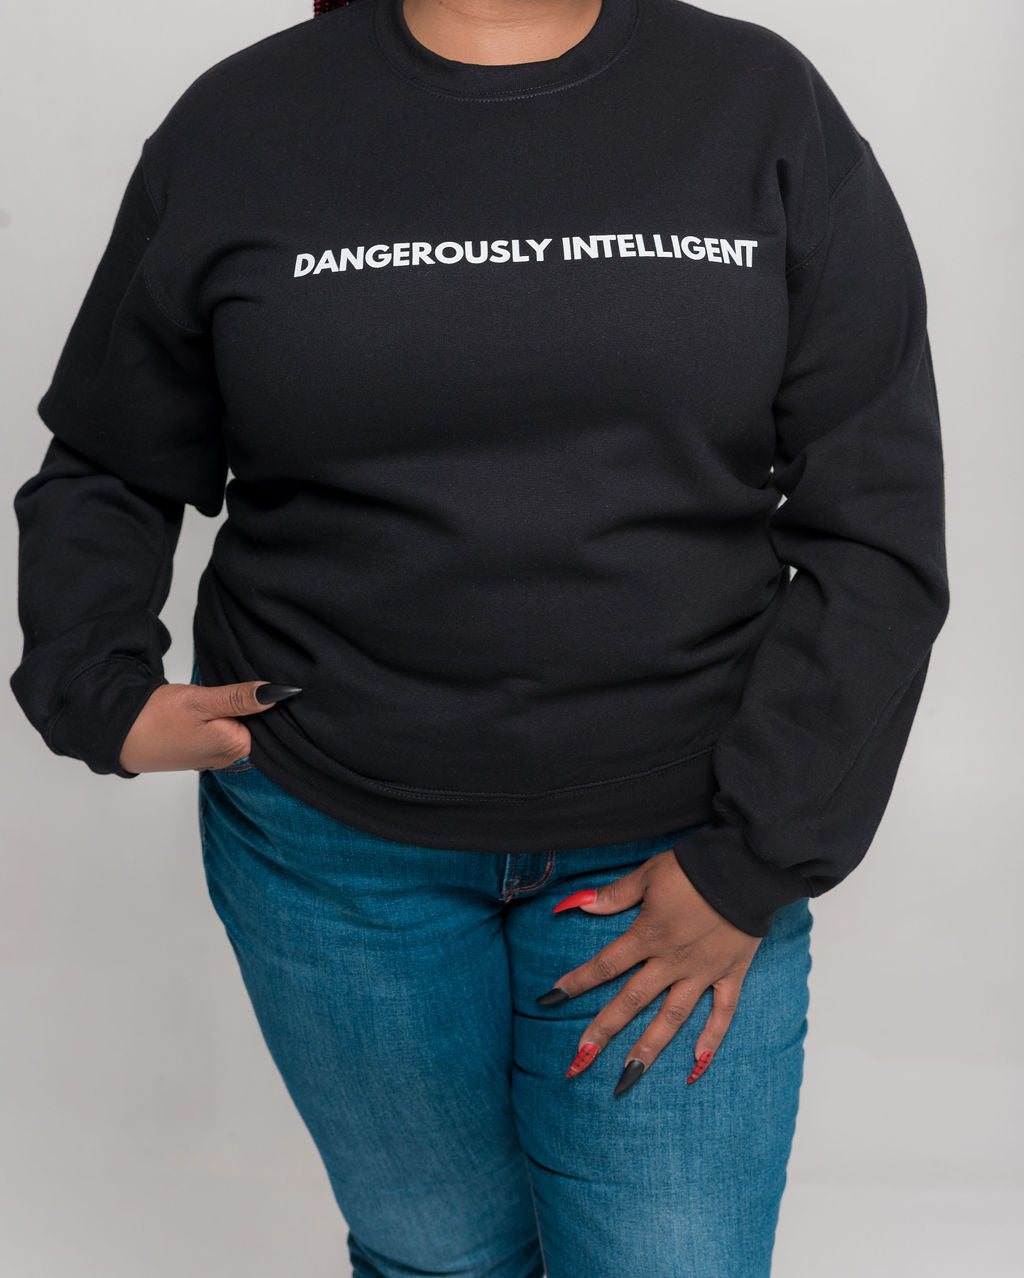 Dangerously Intelligent Sweatshirt